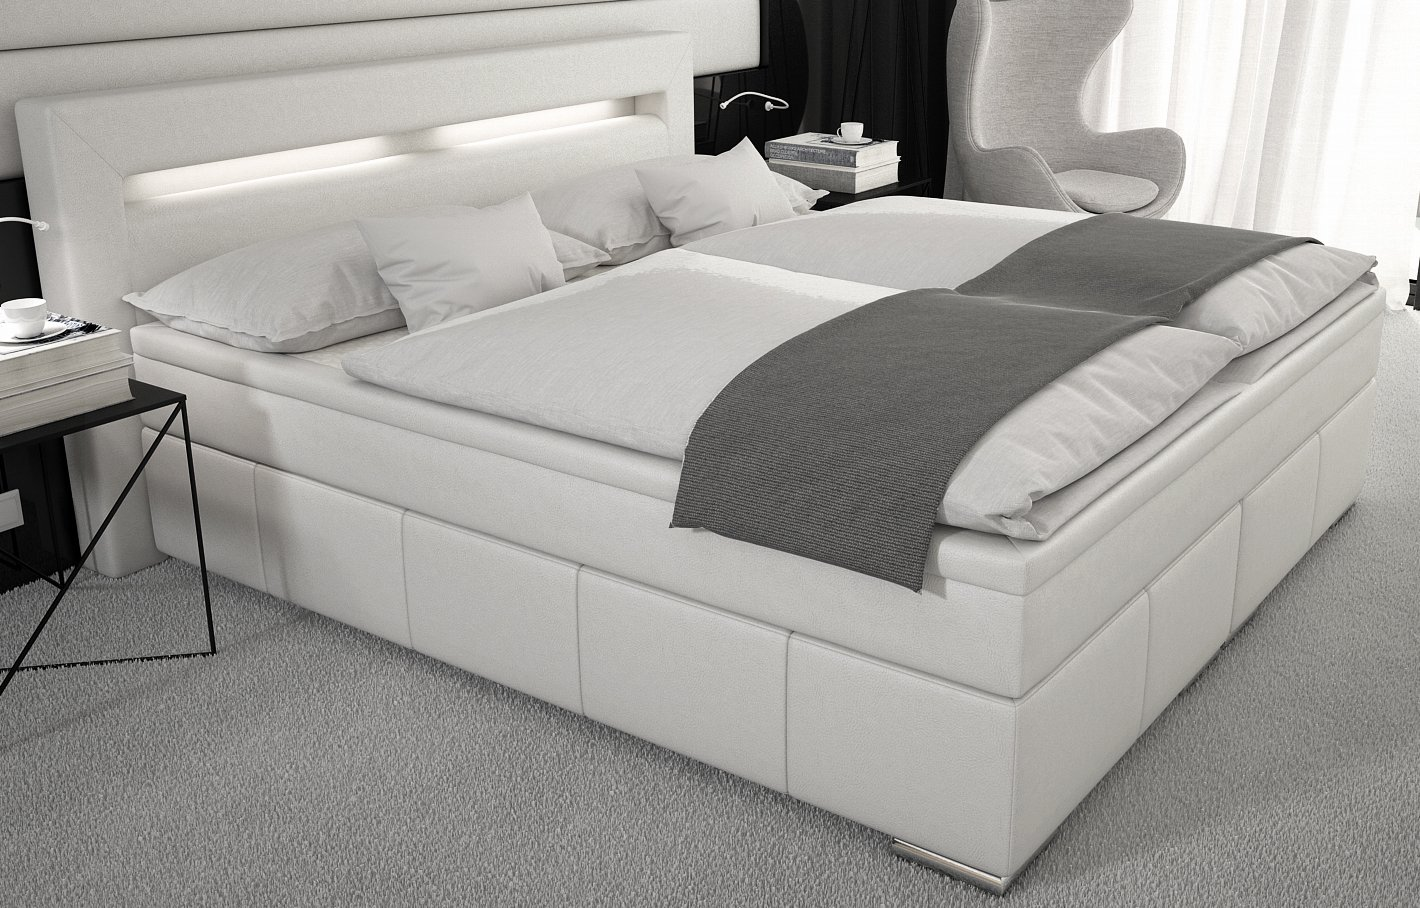 boxspringbett 180x200 cm led kunstleder weiss g nstig. Black Bedroom Furniture Sets. Home Design Ideas